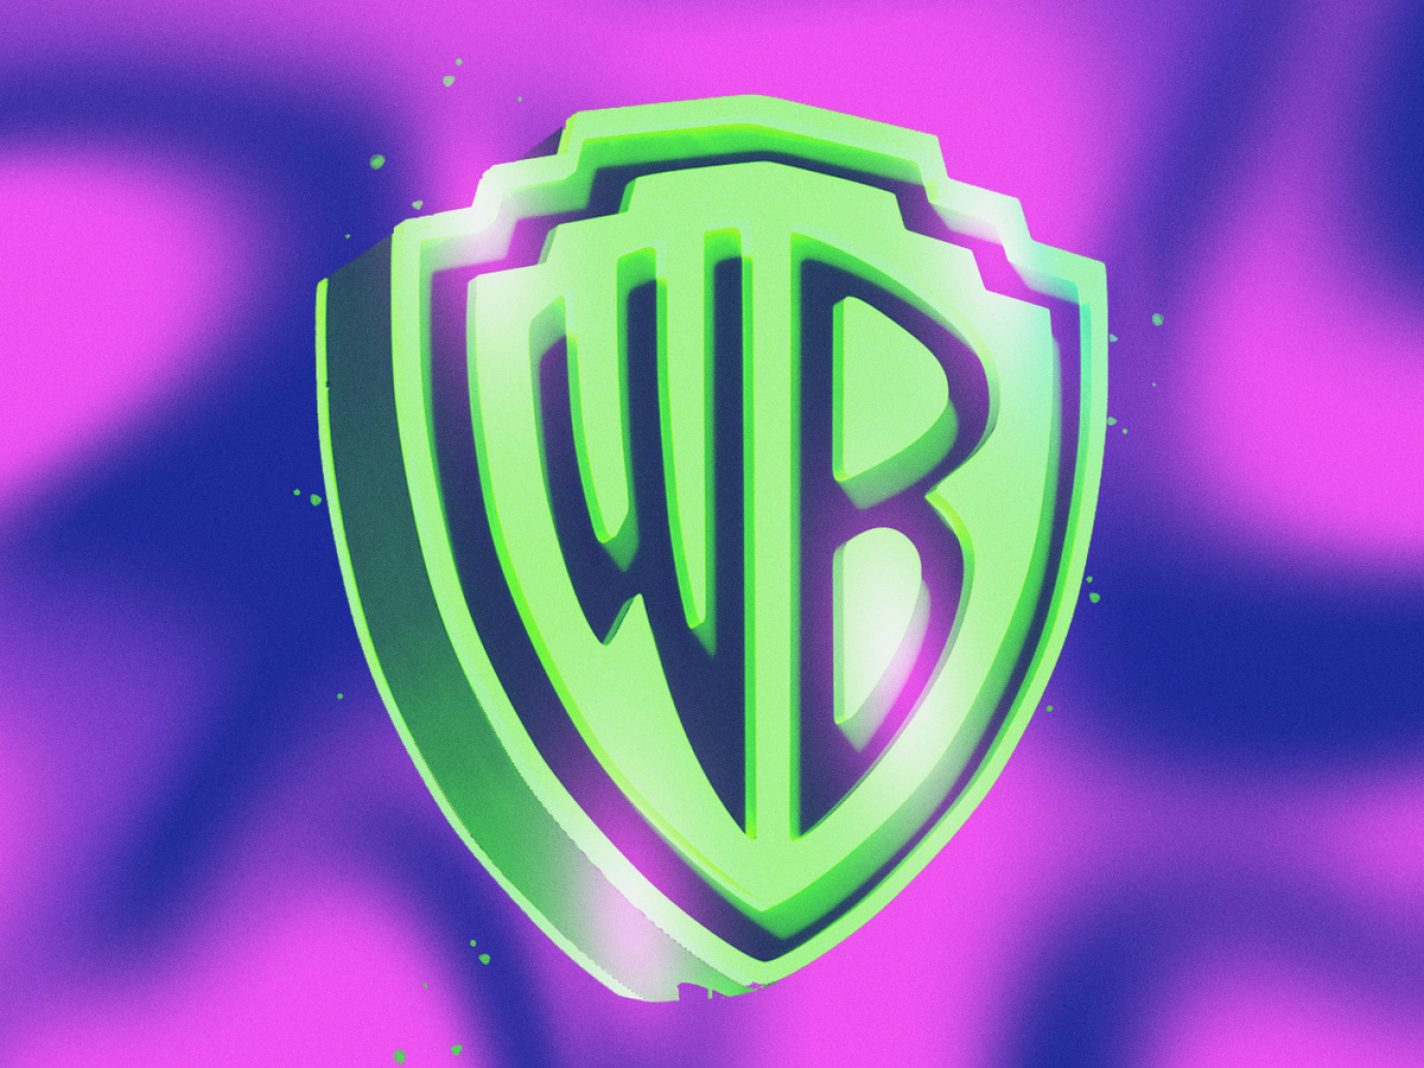 Warner Bros To Release Entire 2021 Film Slate on HBO Max